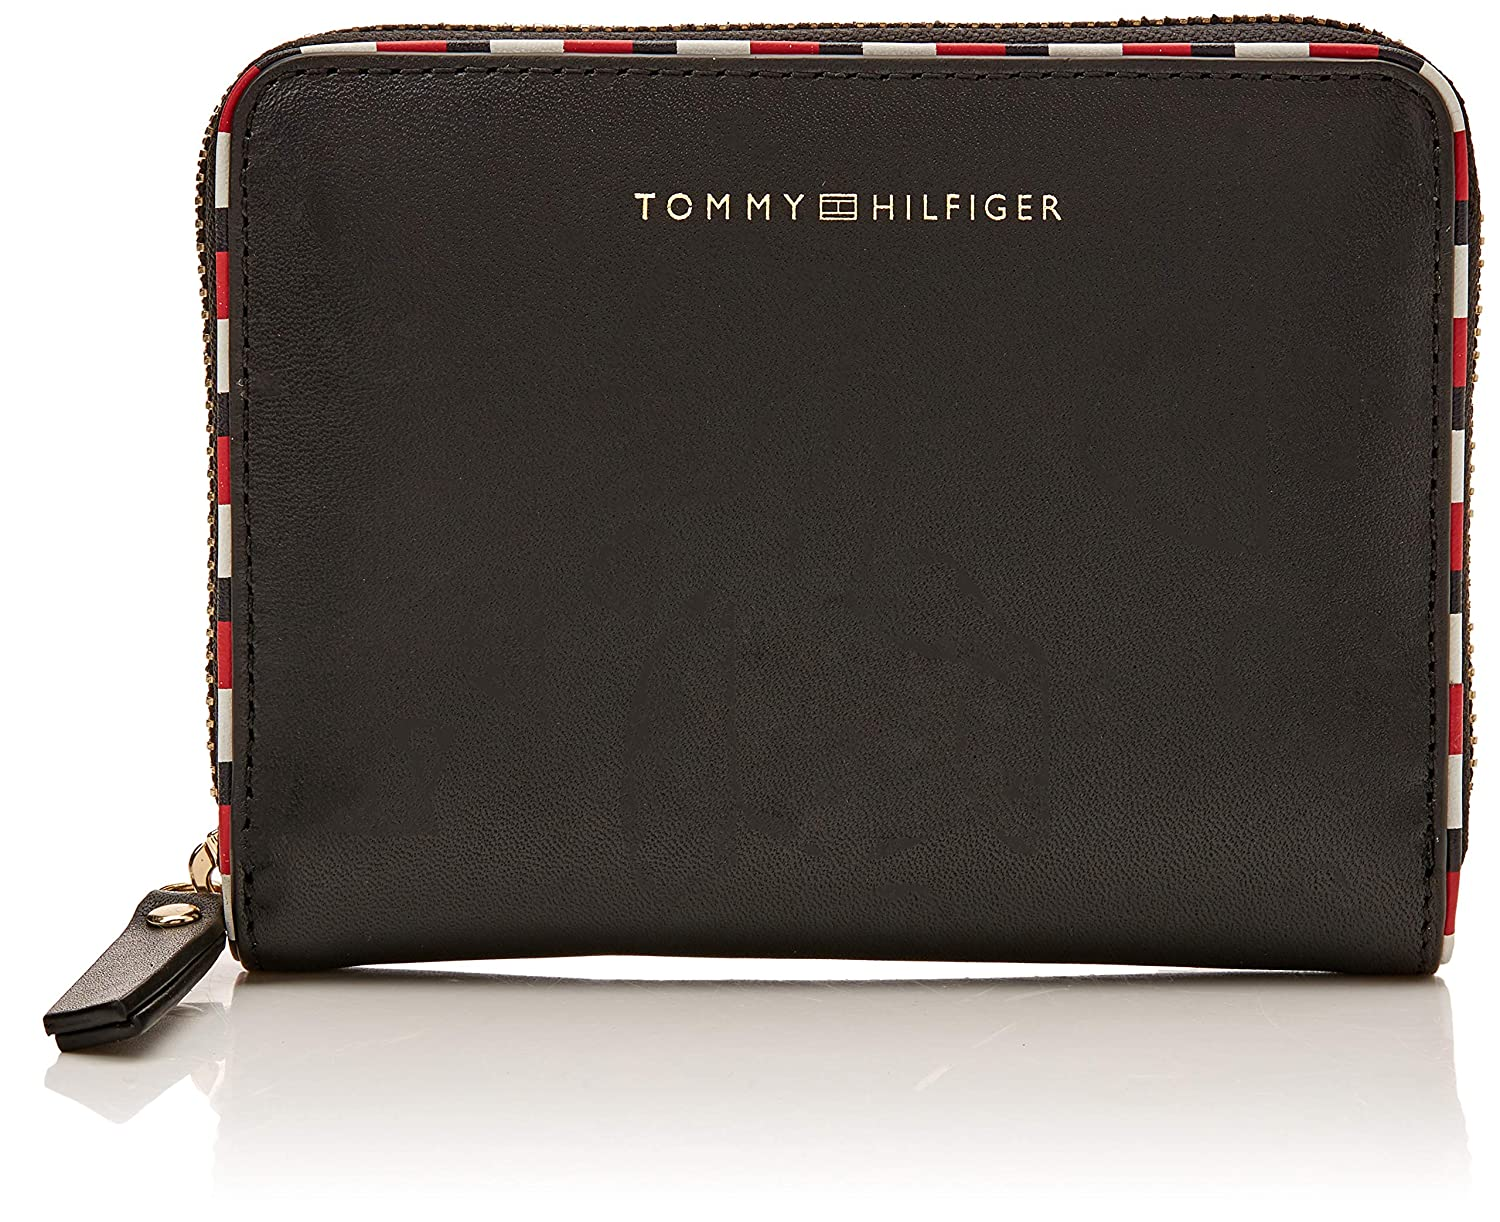 Tommy Hilfiger Classic Leather Cmpct Za Wlt - Carteras Mujer